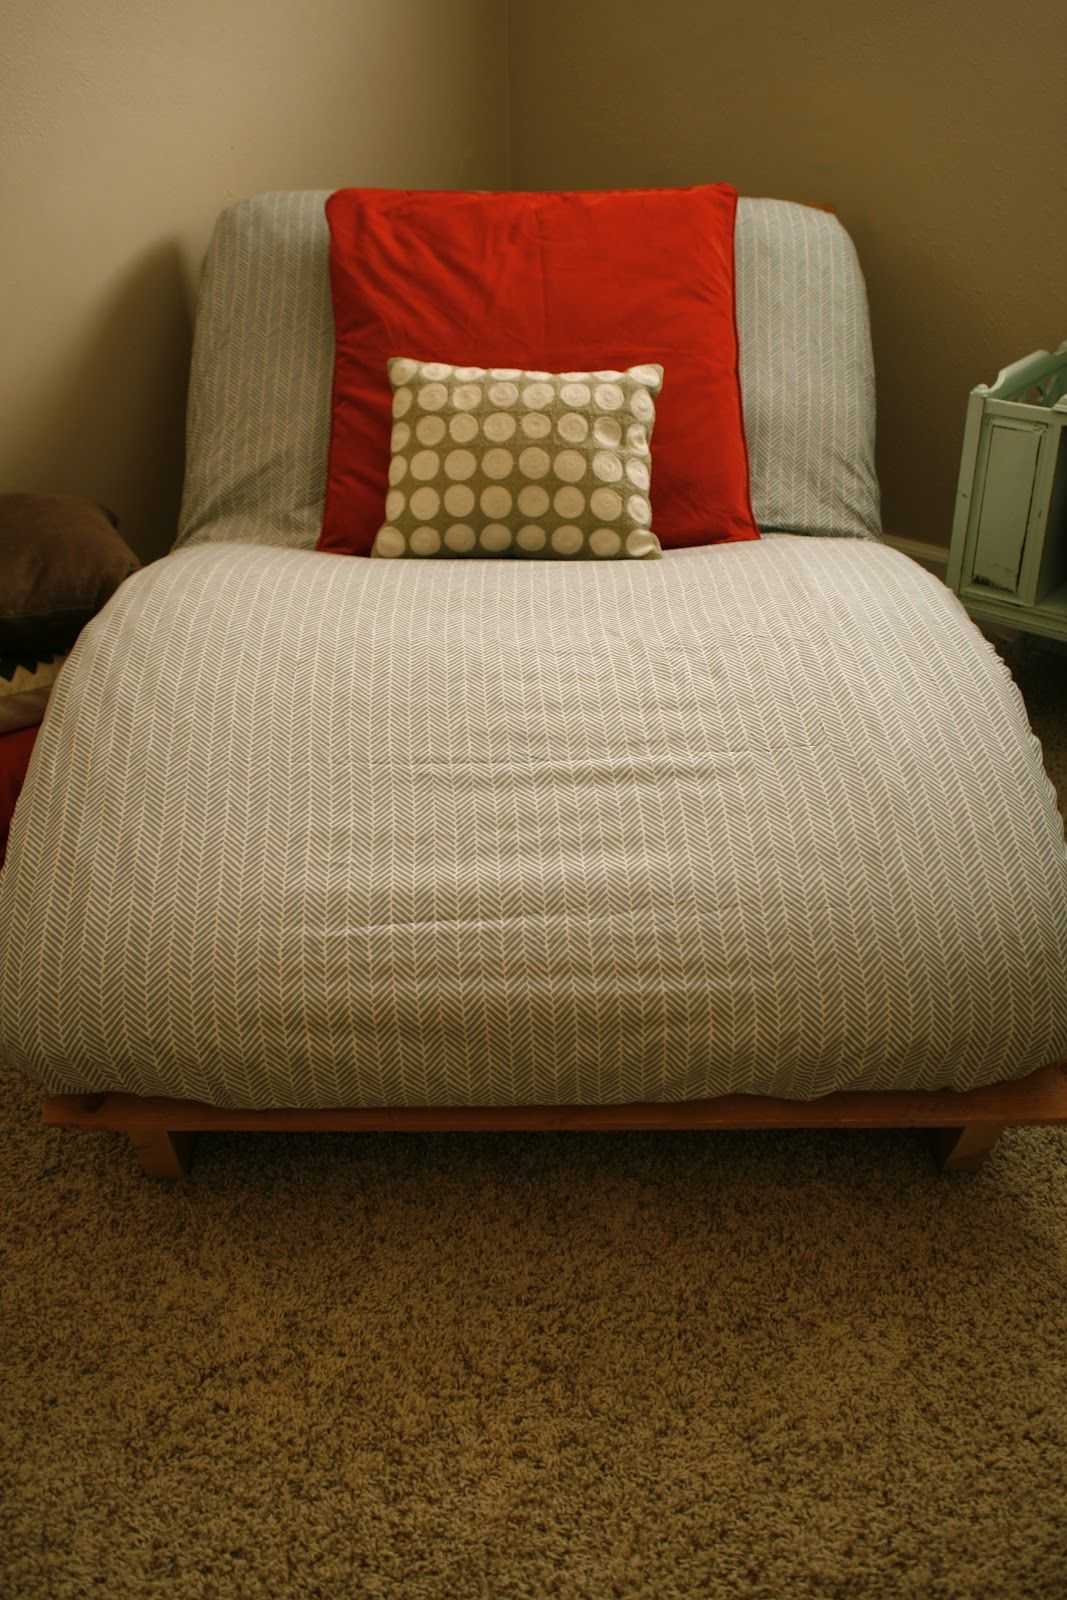 Pearls Poppies Pinkies Up Use Ed Sheet As Futon Cover